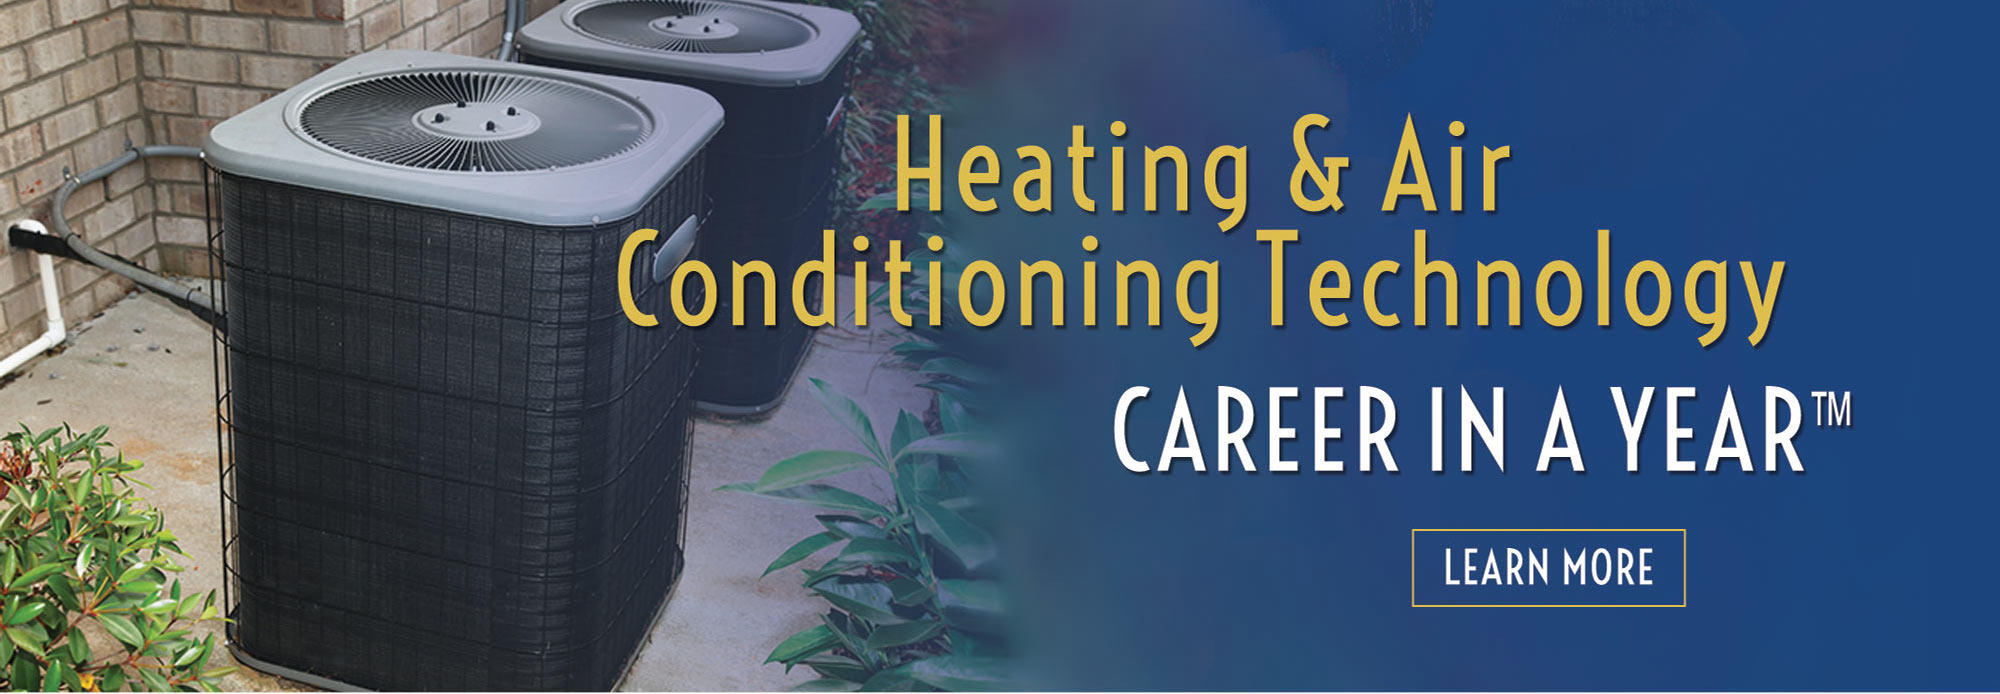 Heating and Air Conditioning Technology Career in a Year